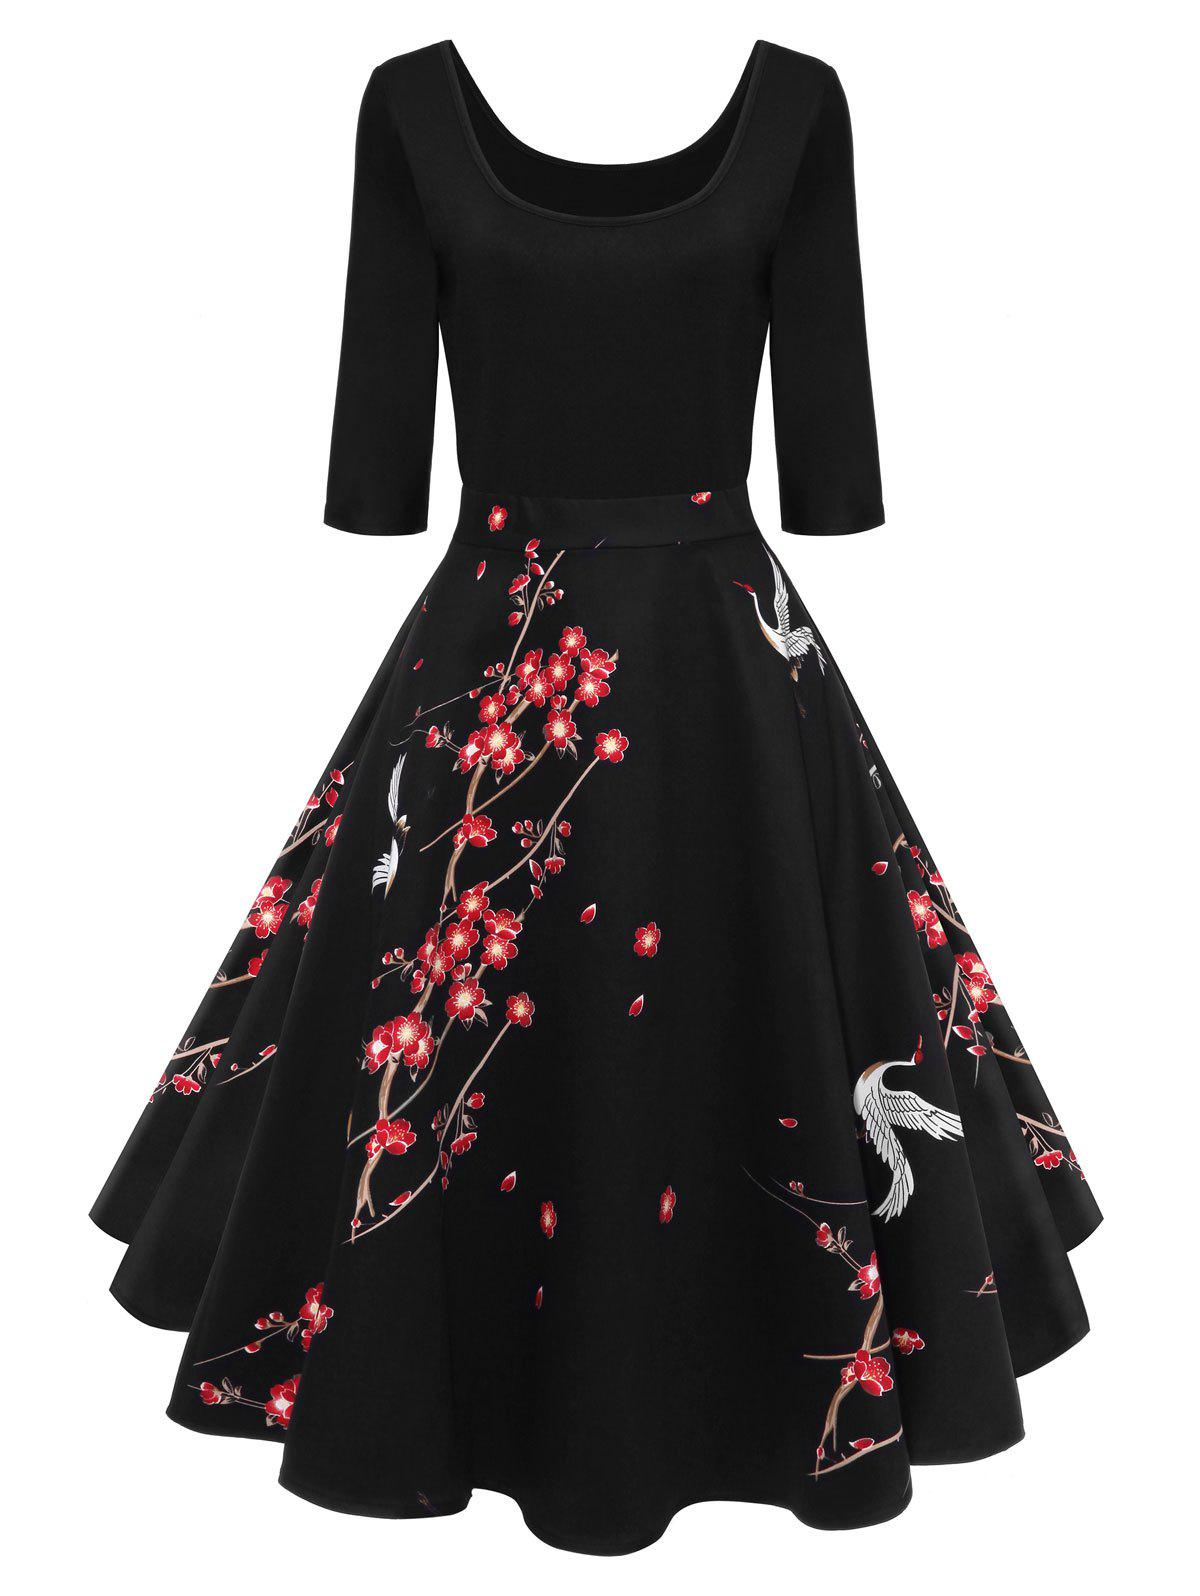 Vintage Wintersweet Print Fit and Flare DressWOMEN<br><br>Size: M; Color: BLACK; Style: Vintage; Material: Cotton,Polyester; Silhouette: A-Line; Dresses Length: Knee-Length; Neckline: U Neck; Sleeve Length: 3/4 Length Sleeves; Pattern Type: Floral; With Belt: No; Season: Fall,Spring; Weight: 0.4000kg; Package Contents: 1 x Dress;